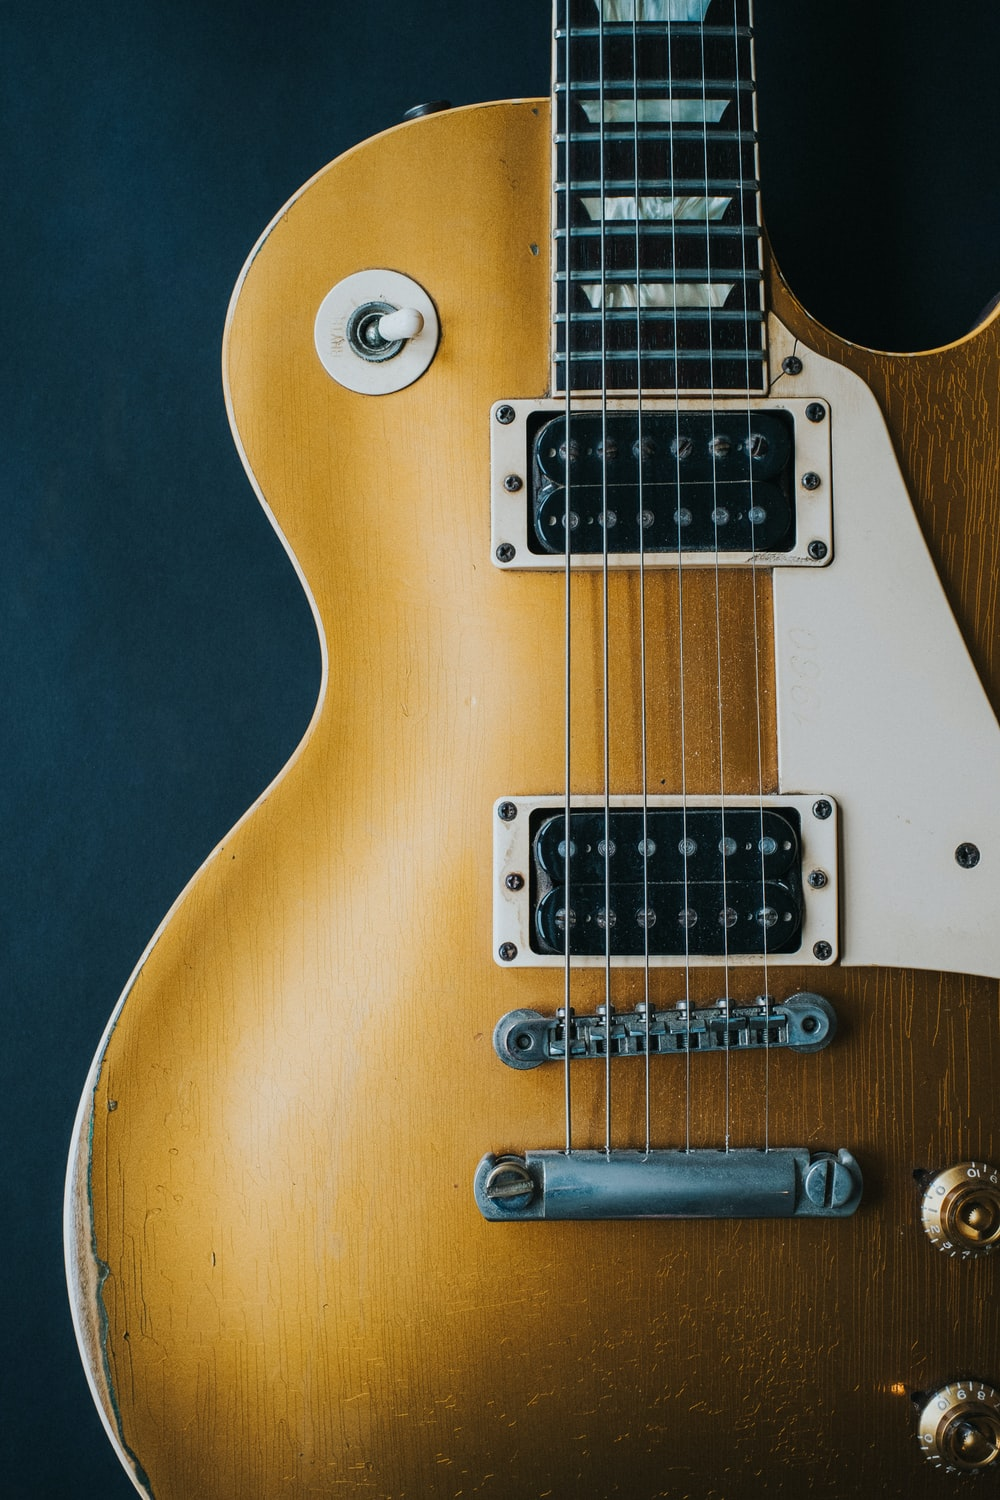 closeup photography of electric guitar